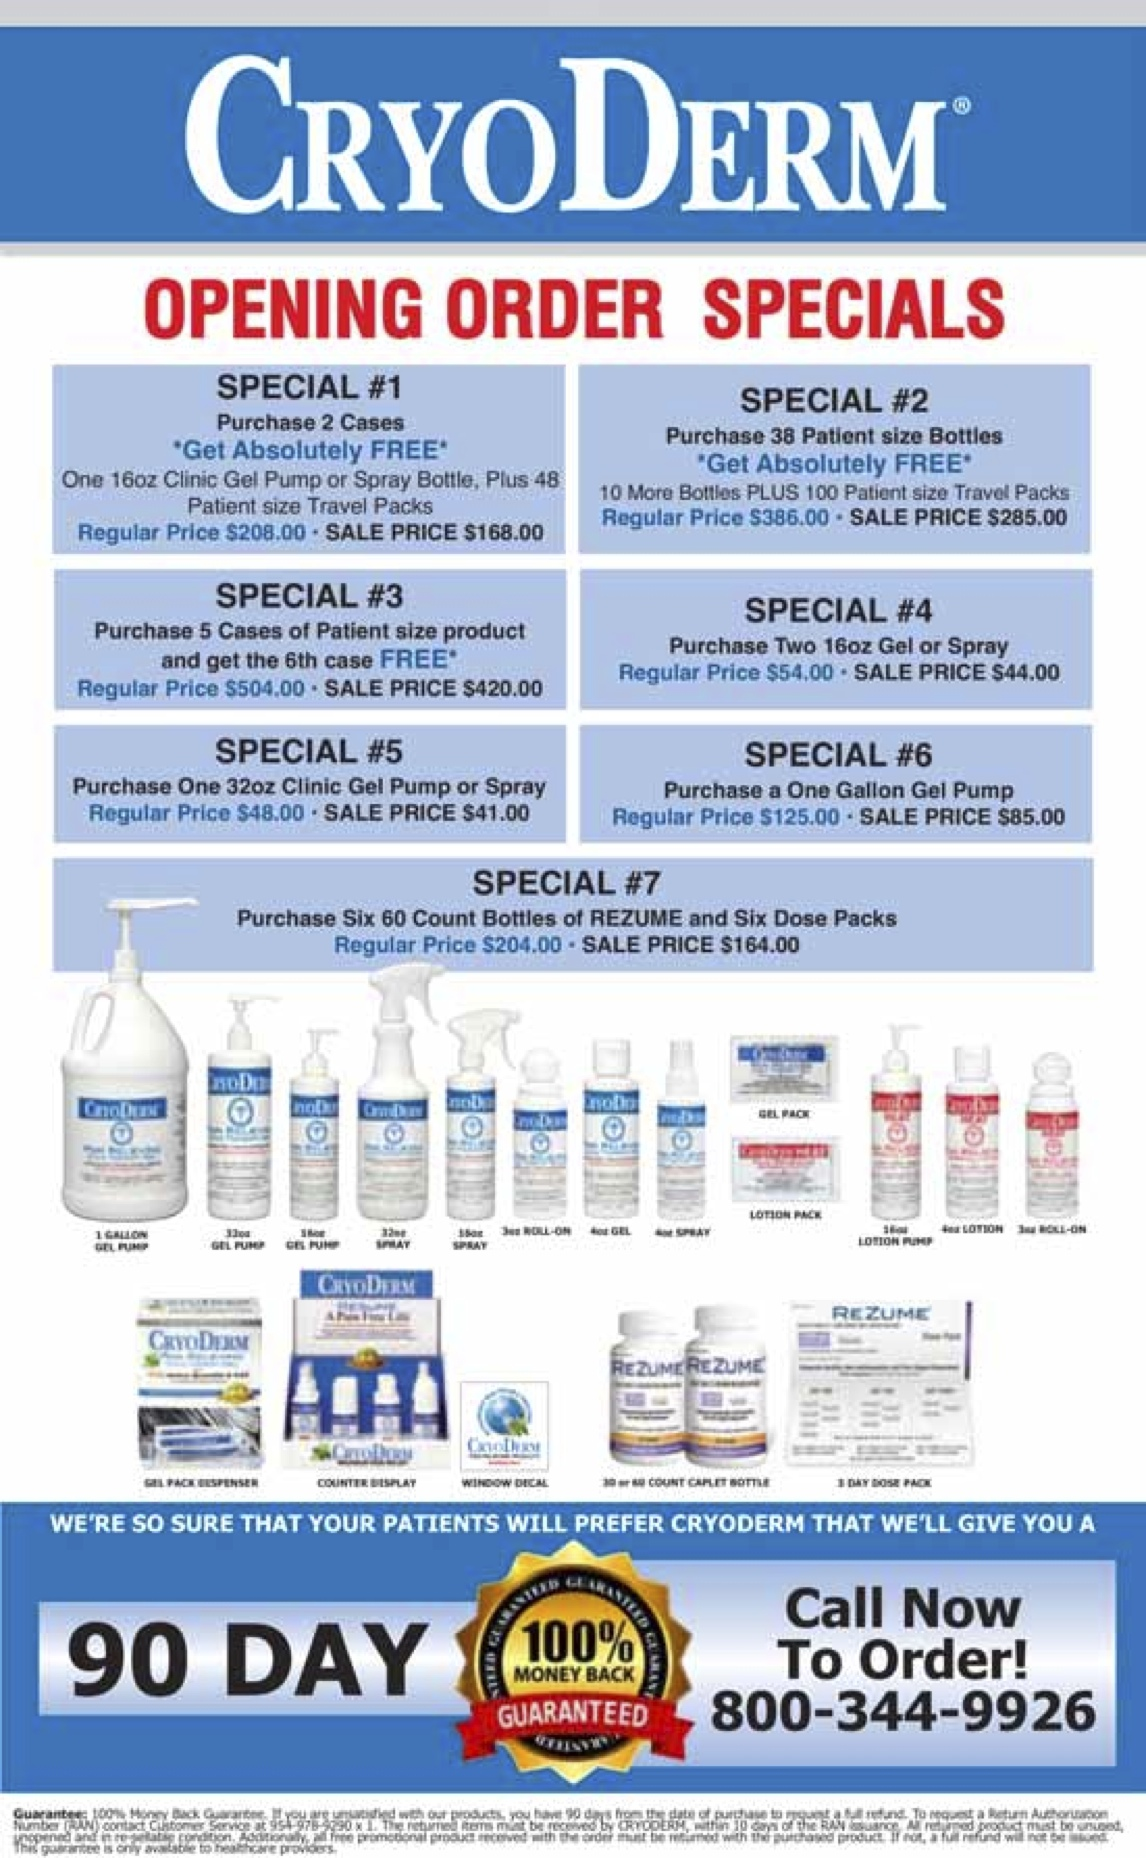 CyroDerm Opening Order Specials